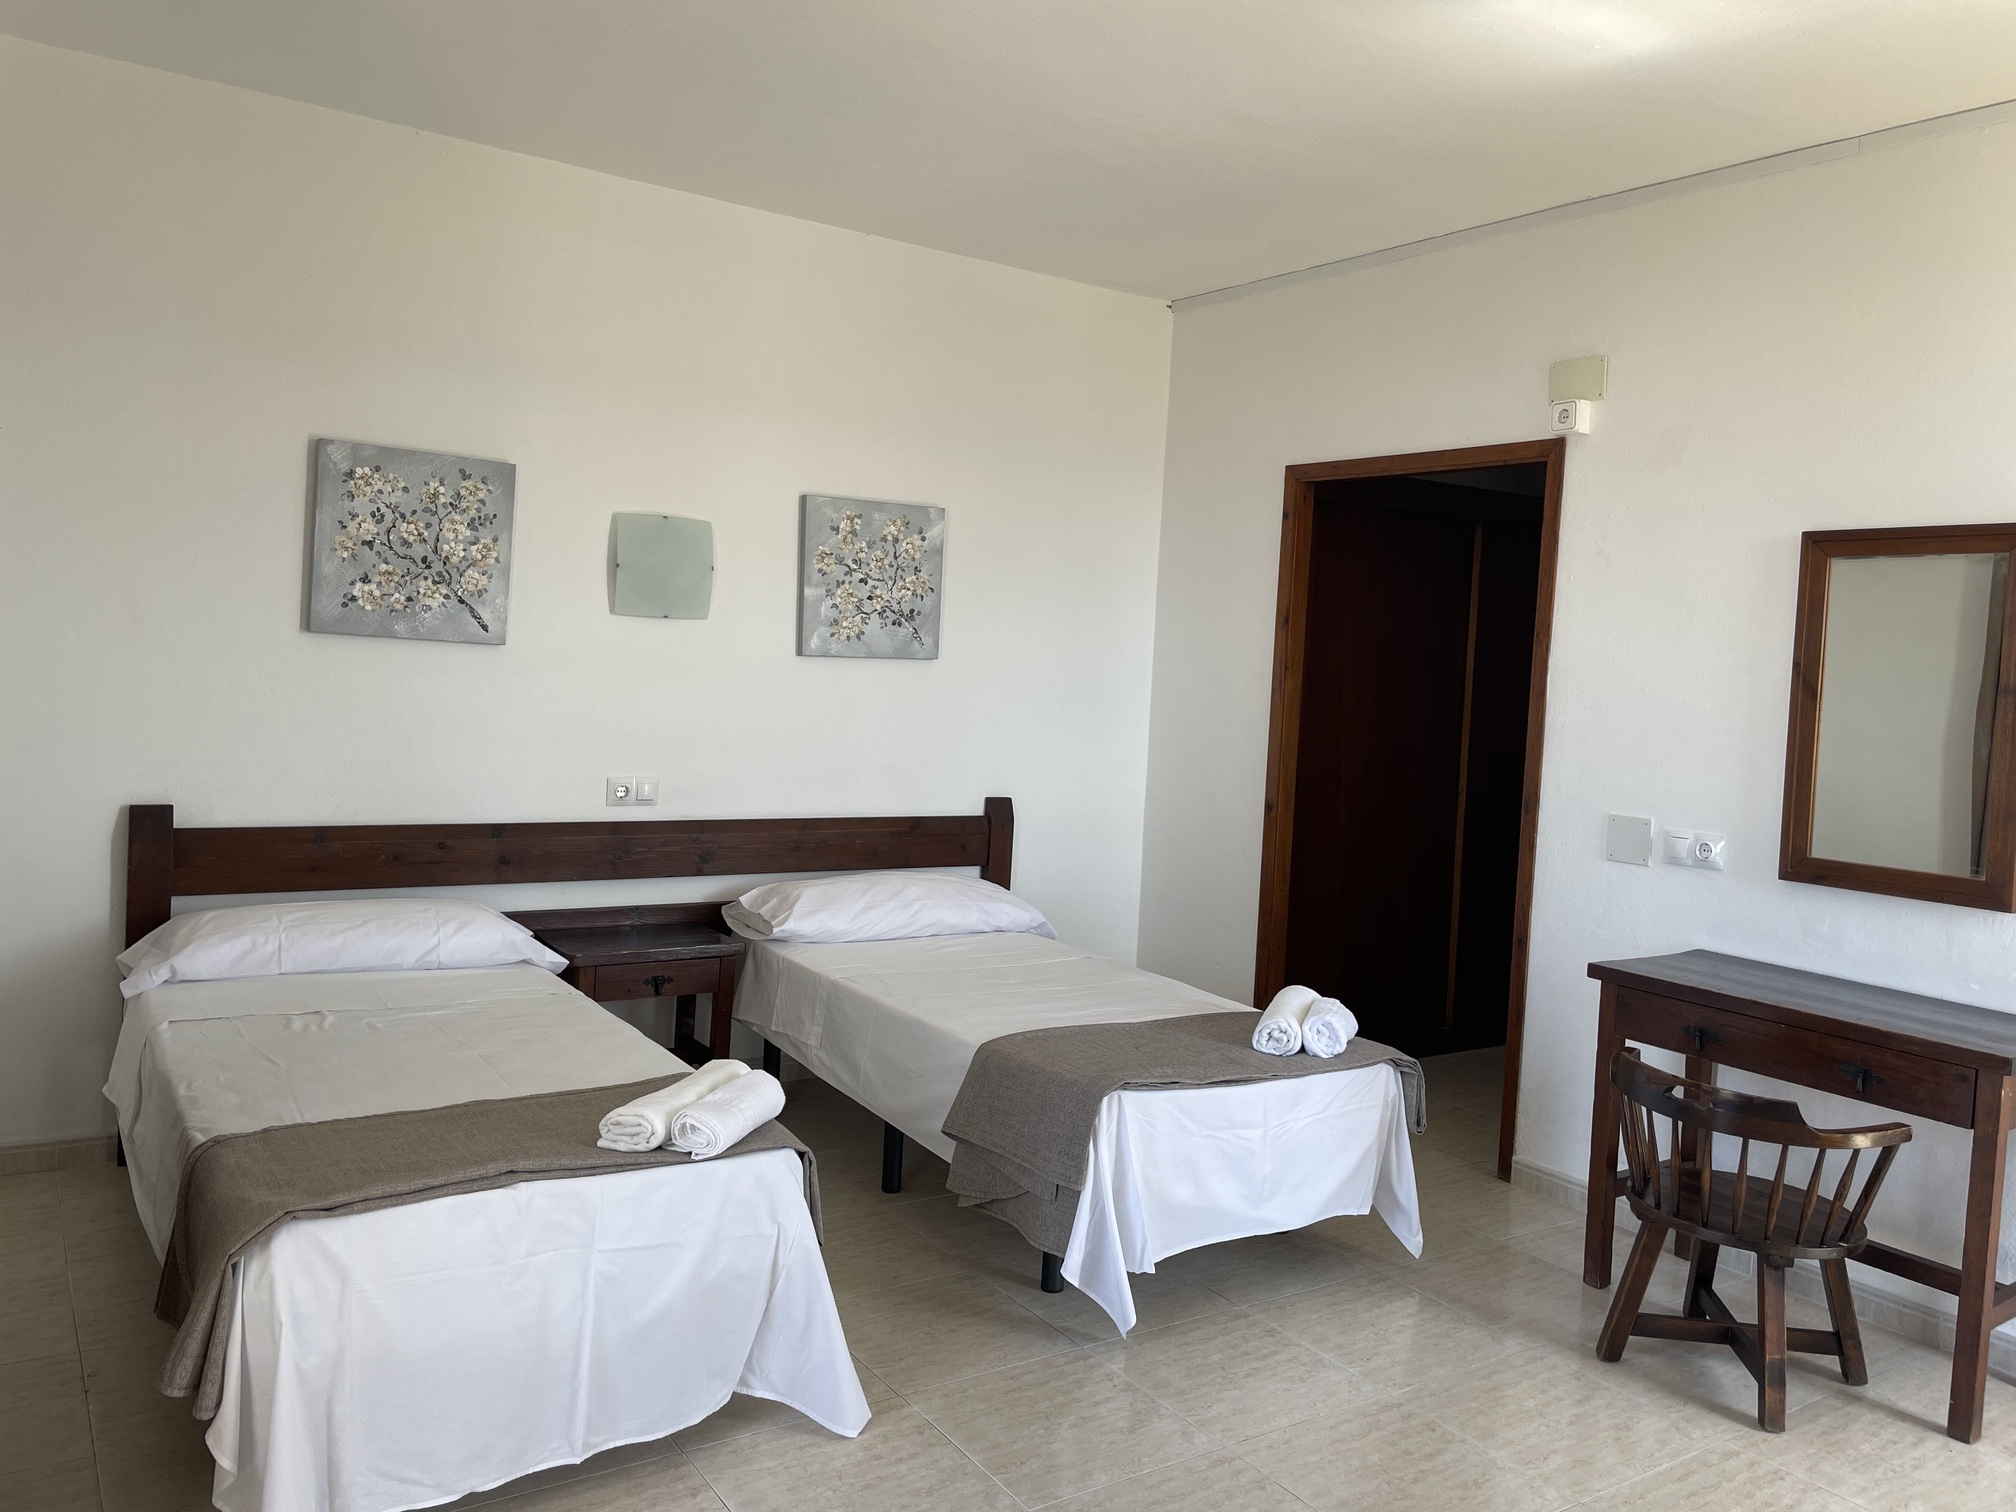 Hotel Galera - Image Gallery of rooms, hotel services, pool, breakfasts